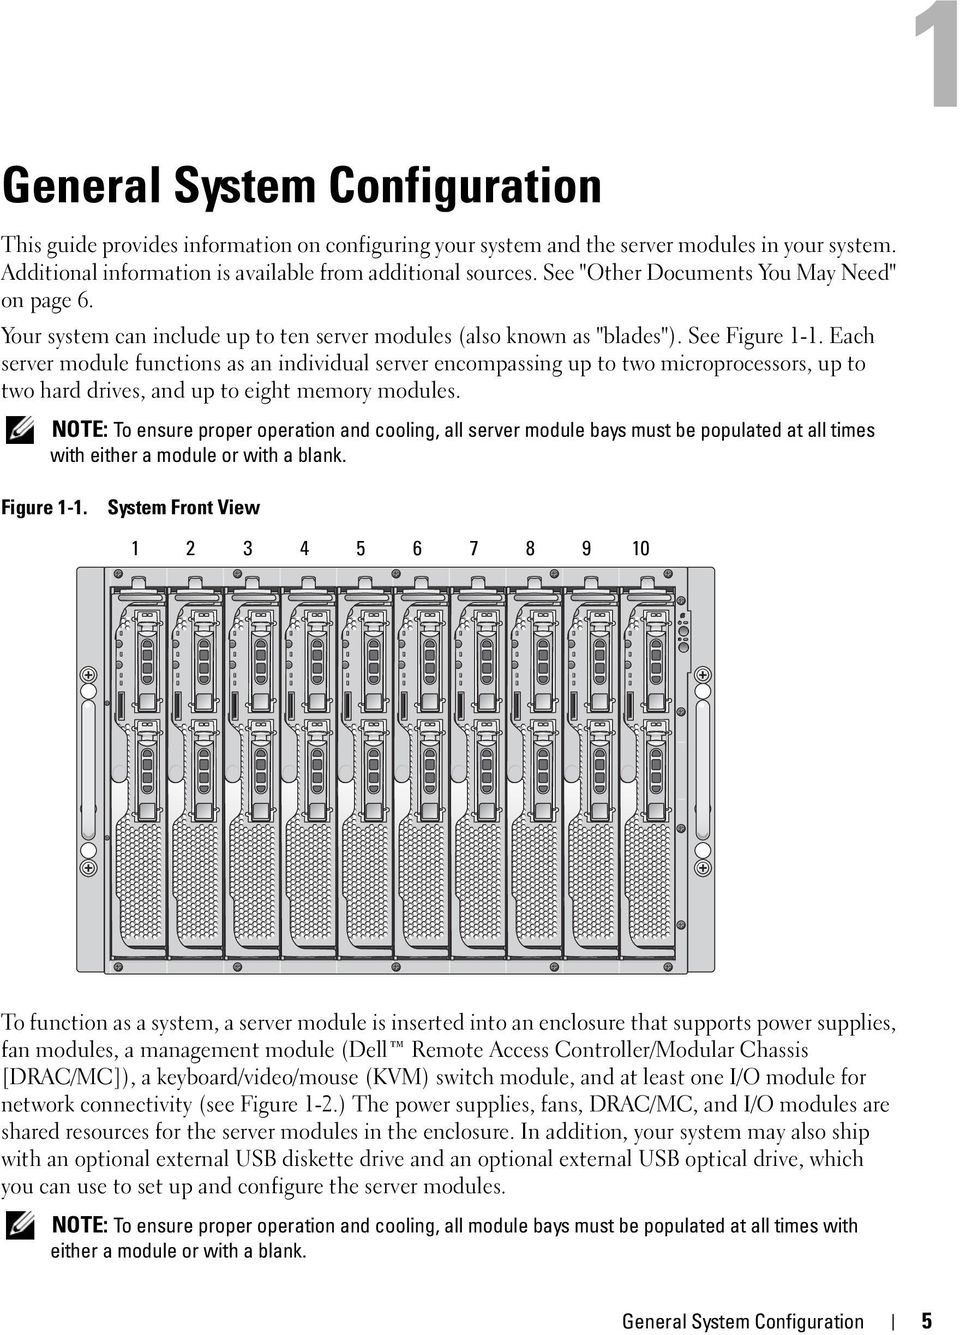 Each server module functions as an individual server encompassing up to two microprocessors, up to two hard drives, and up to eight memory modules.